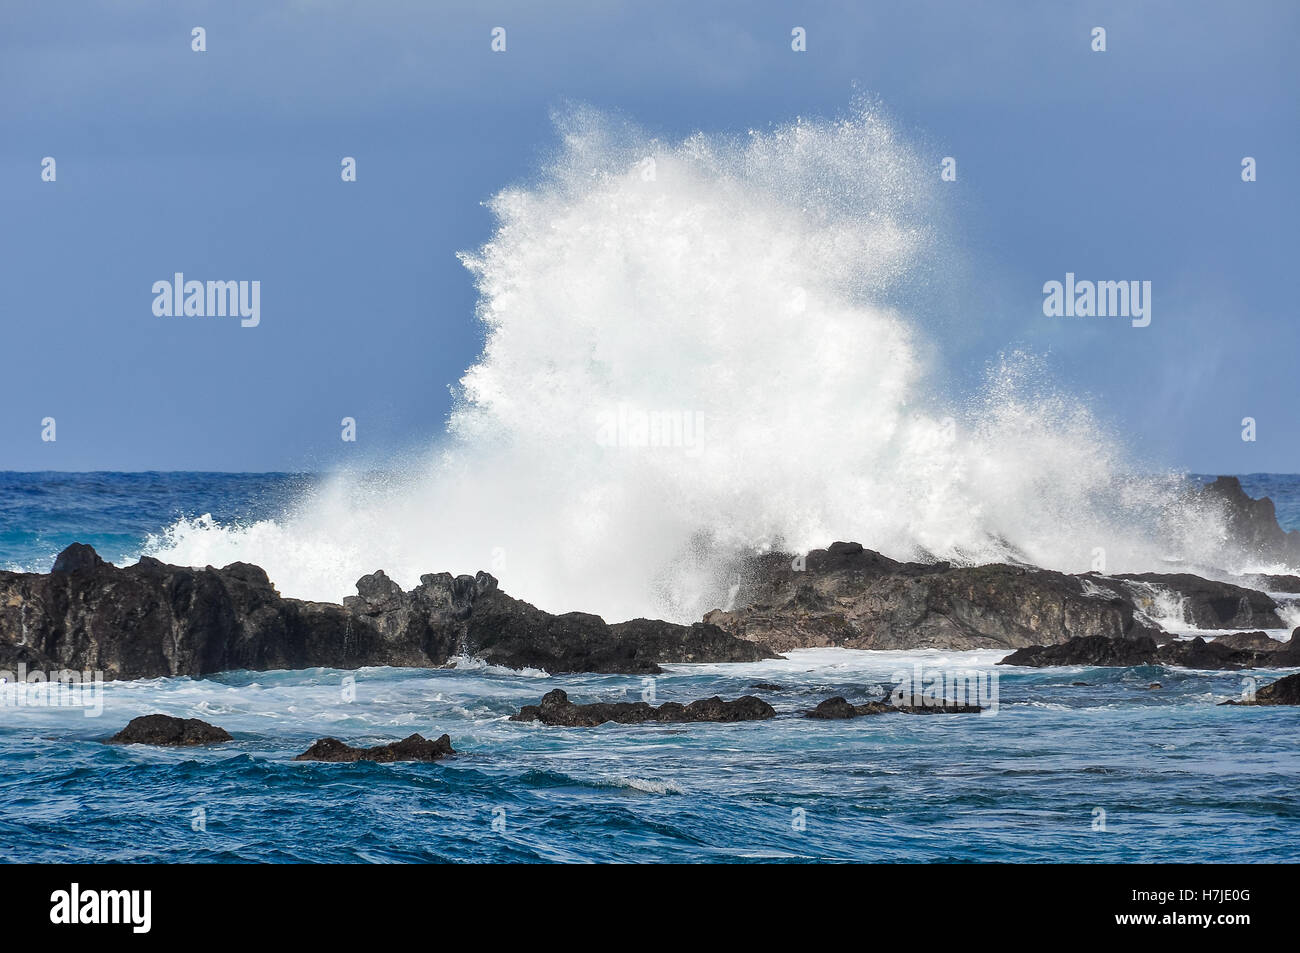 Big waves in the rough coastal landscape in Easter Island, Chile - Stock Image